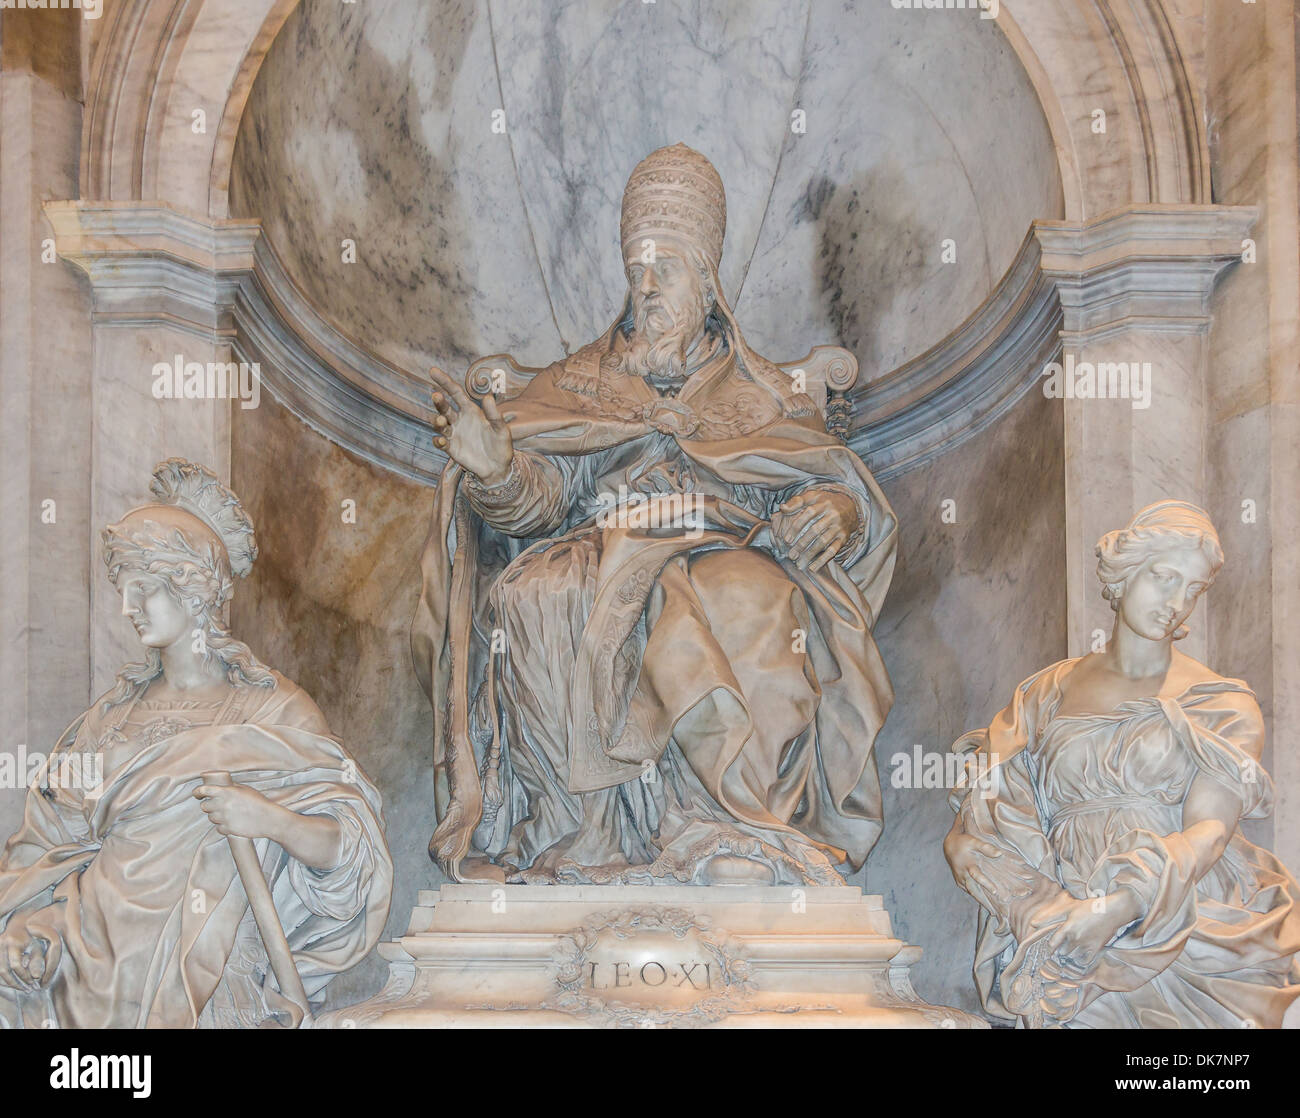 Monument to pope Leo XI, detail, by Alessandro Algardi, Saint Peter's Basilica, Vatican City. - Stock Image